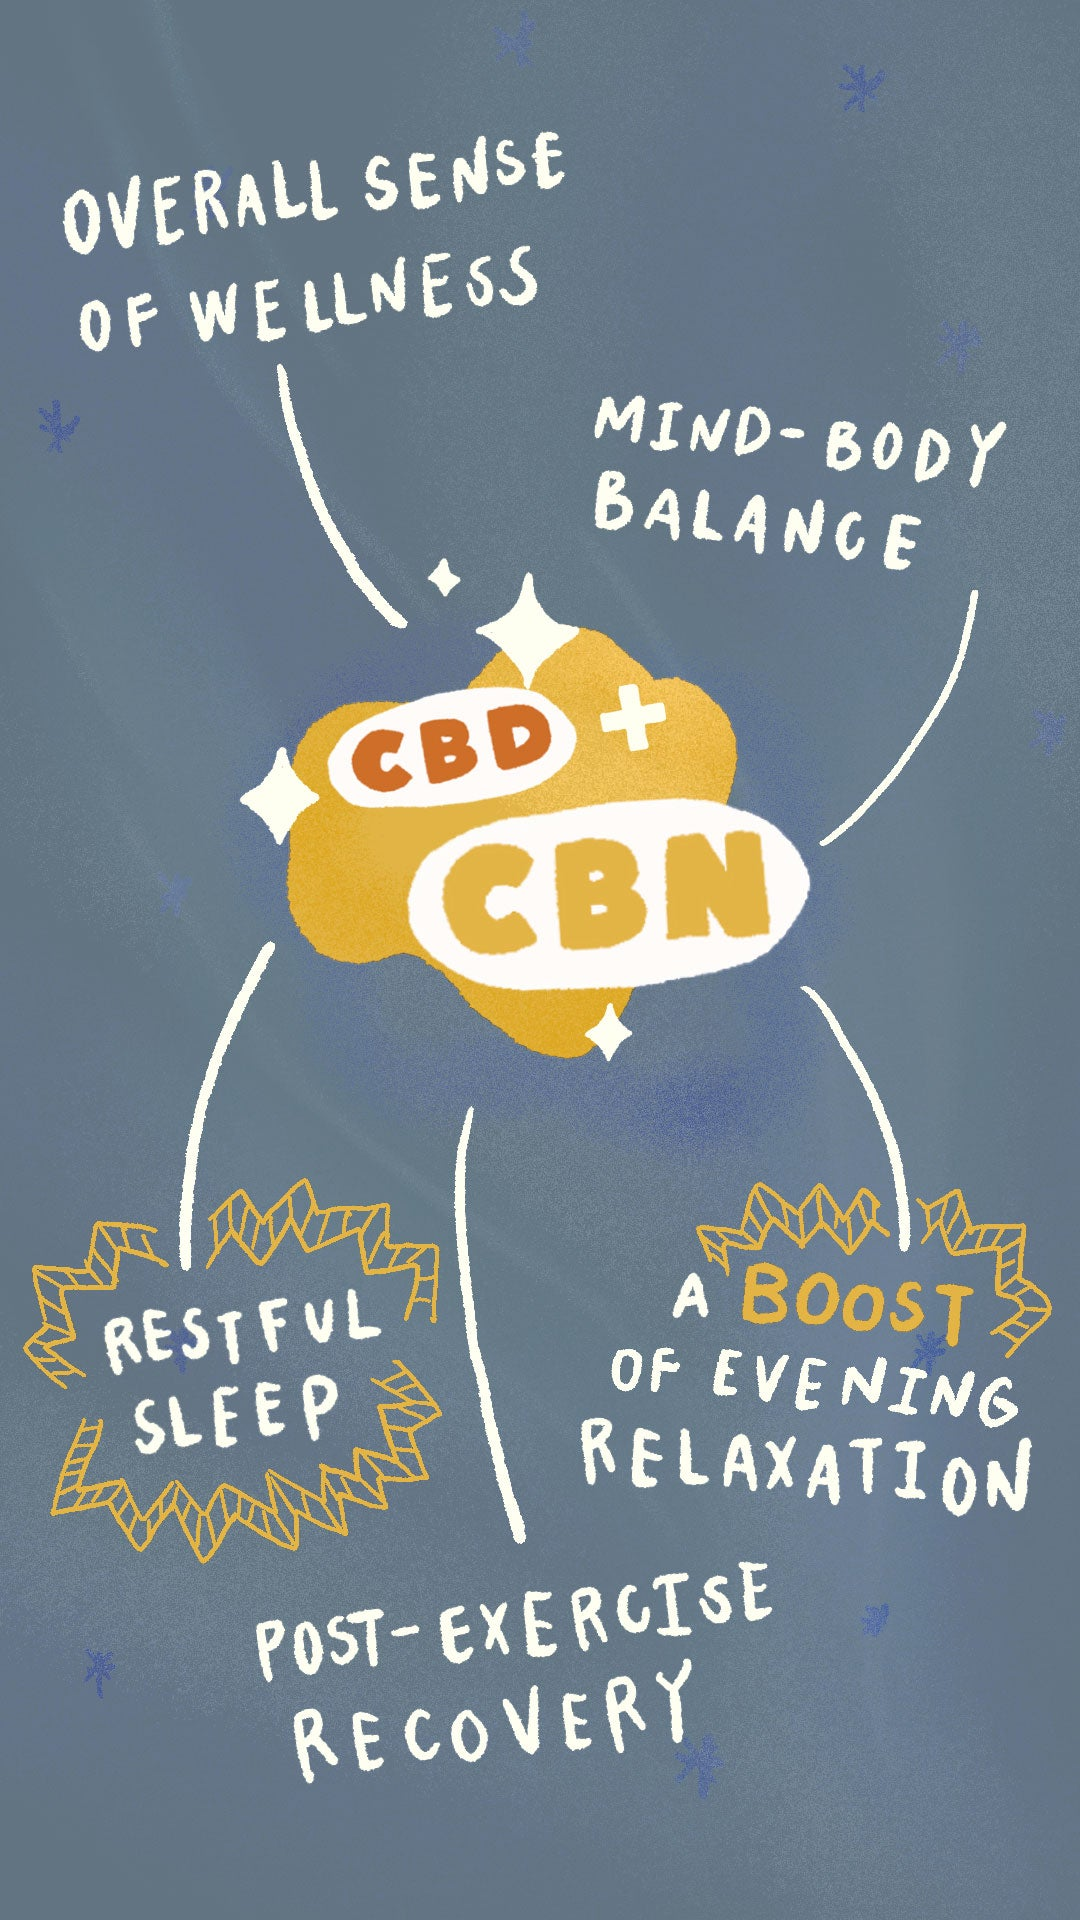 CBN for sleep, enhanced evening relaxation, boosted sedative effect